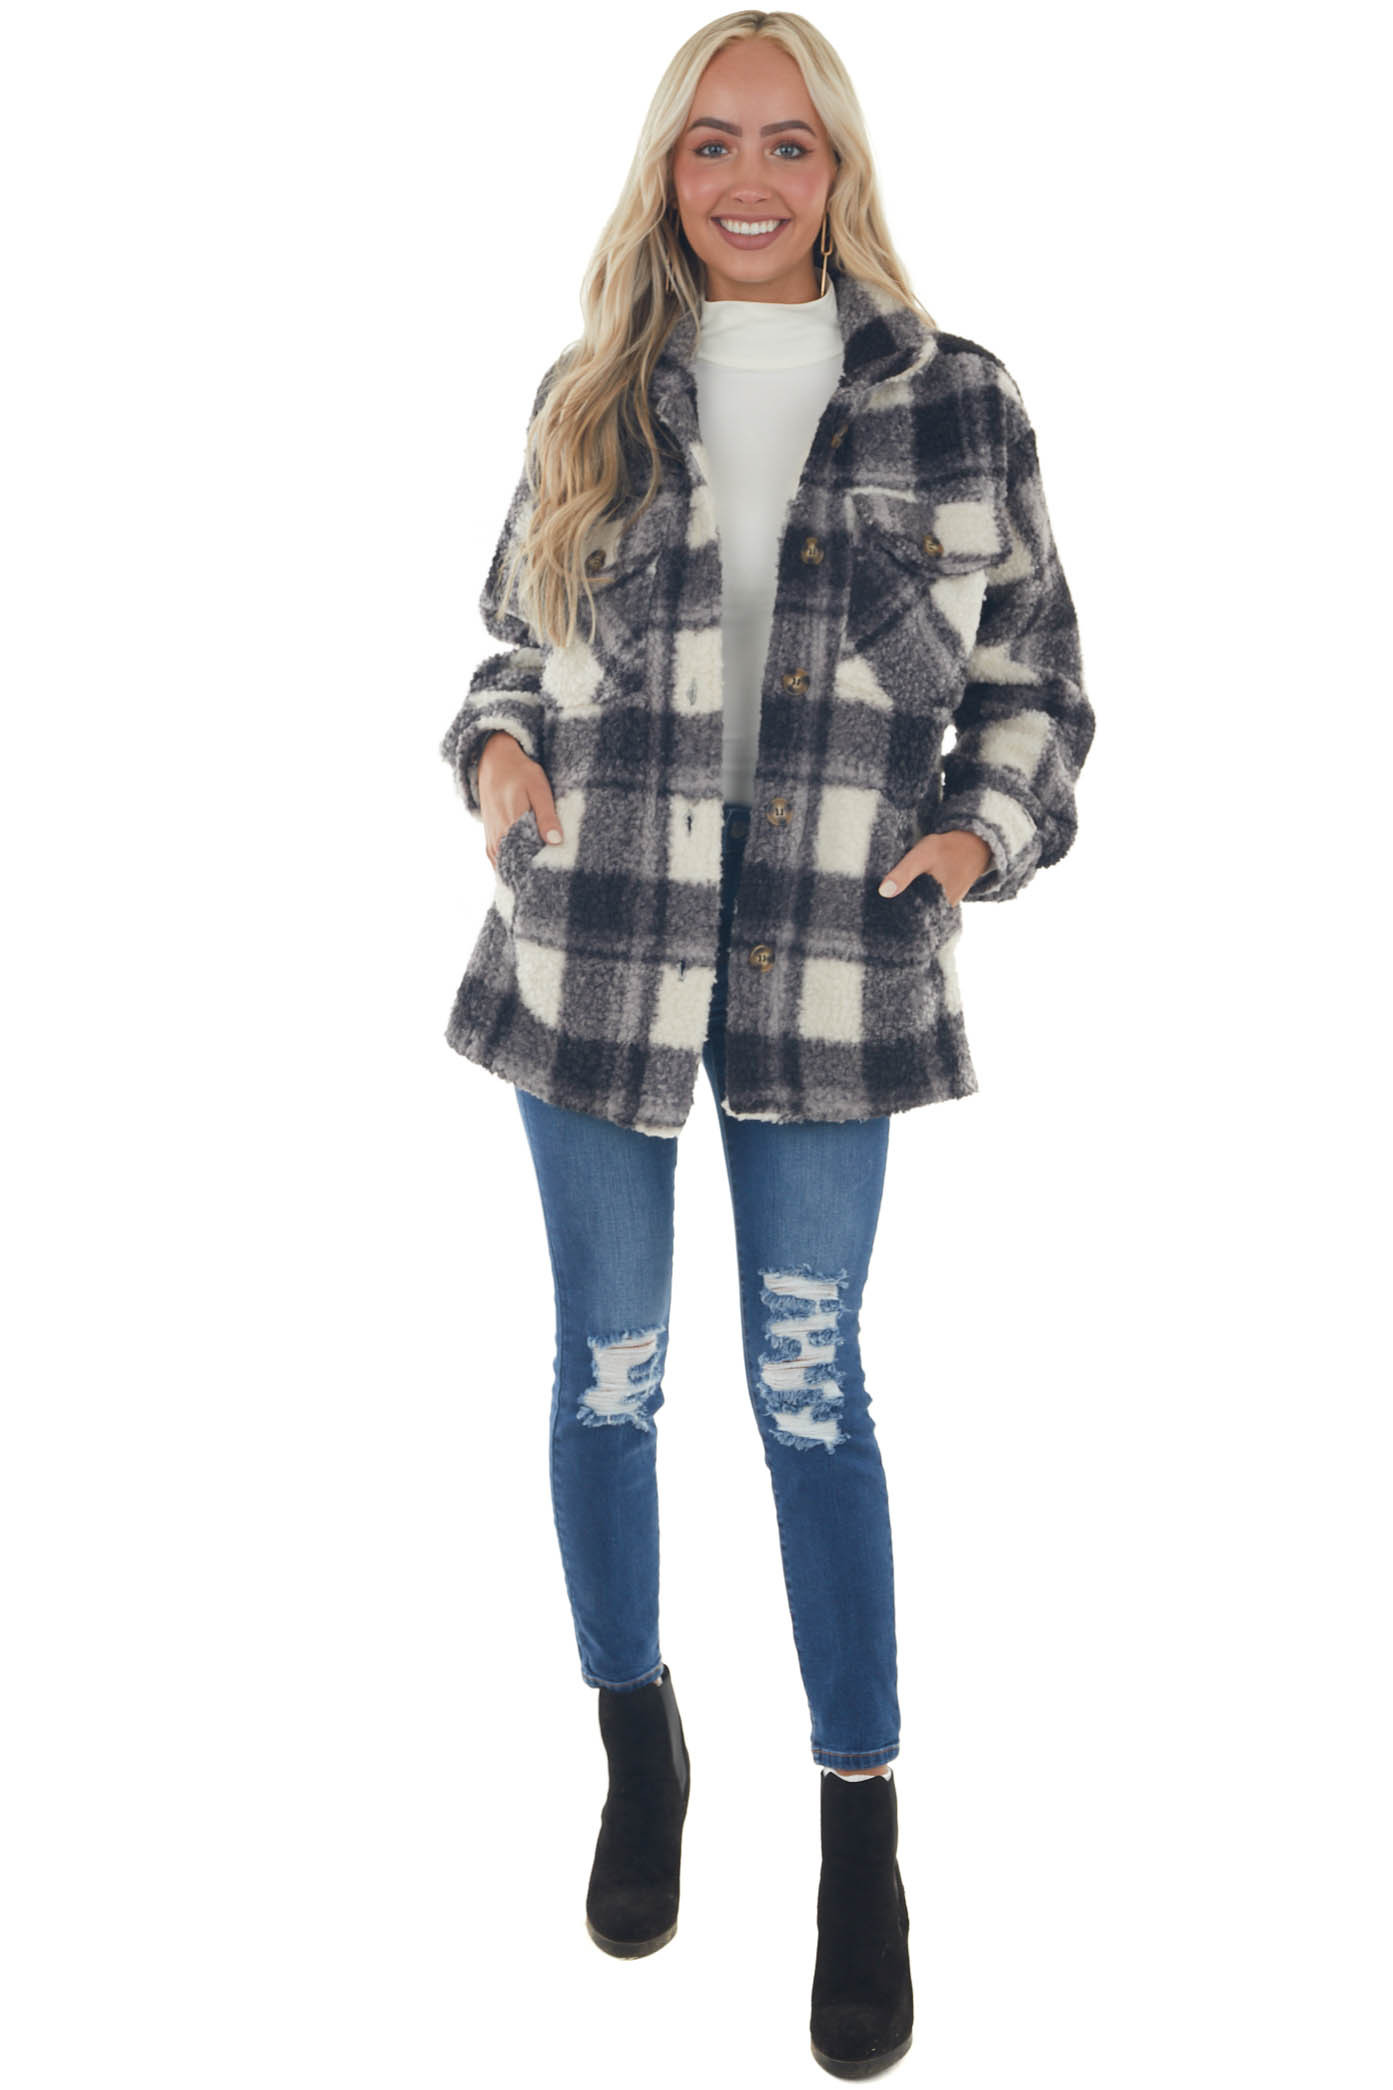 Ivory and Black Plaid Button Up Sherpa Jacket